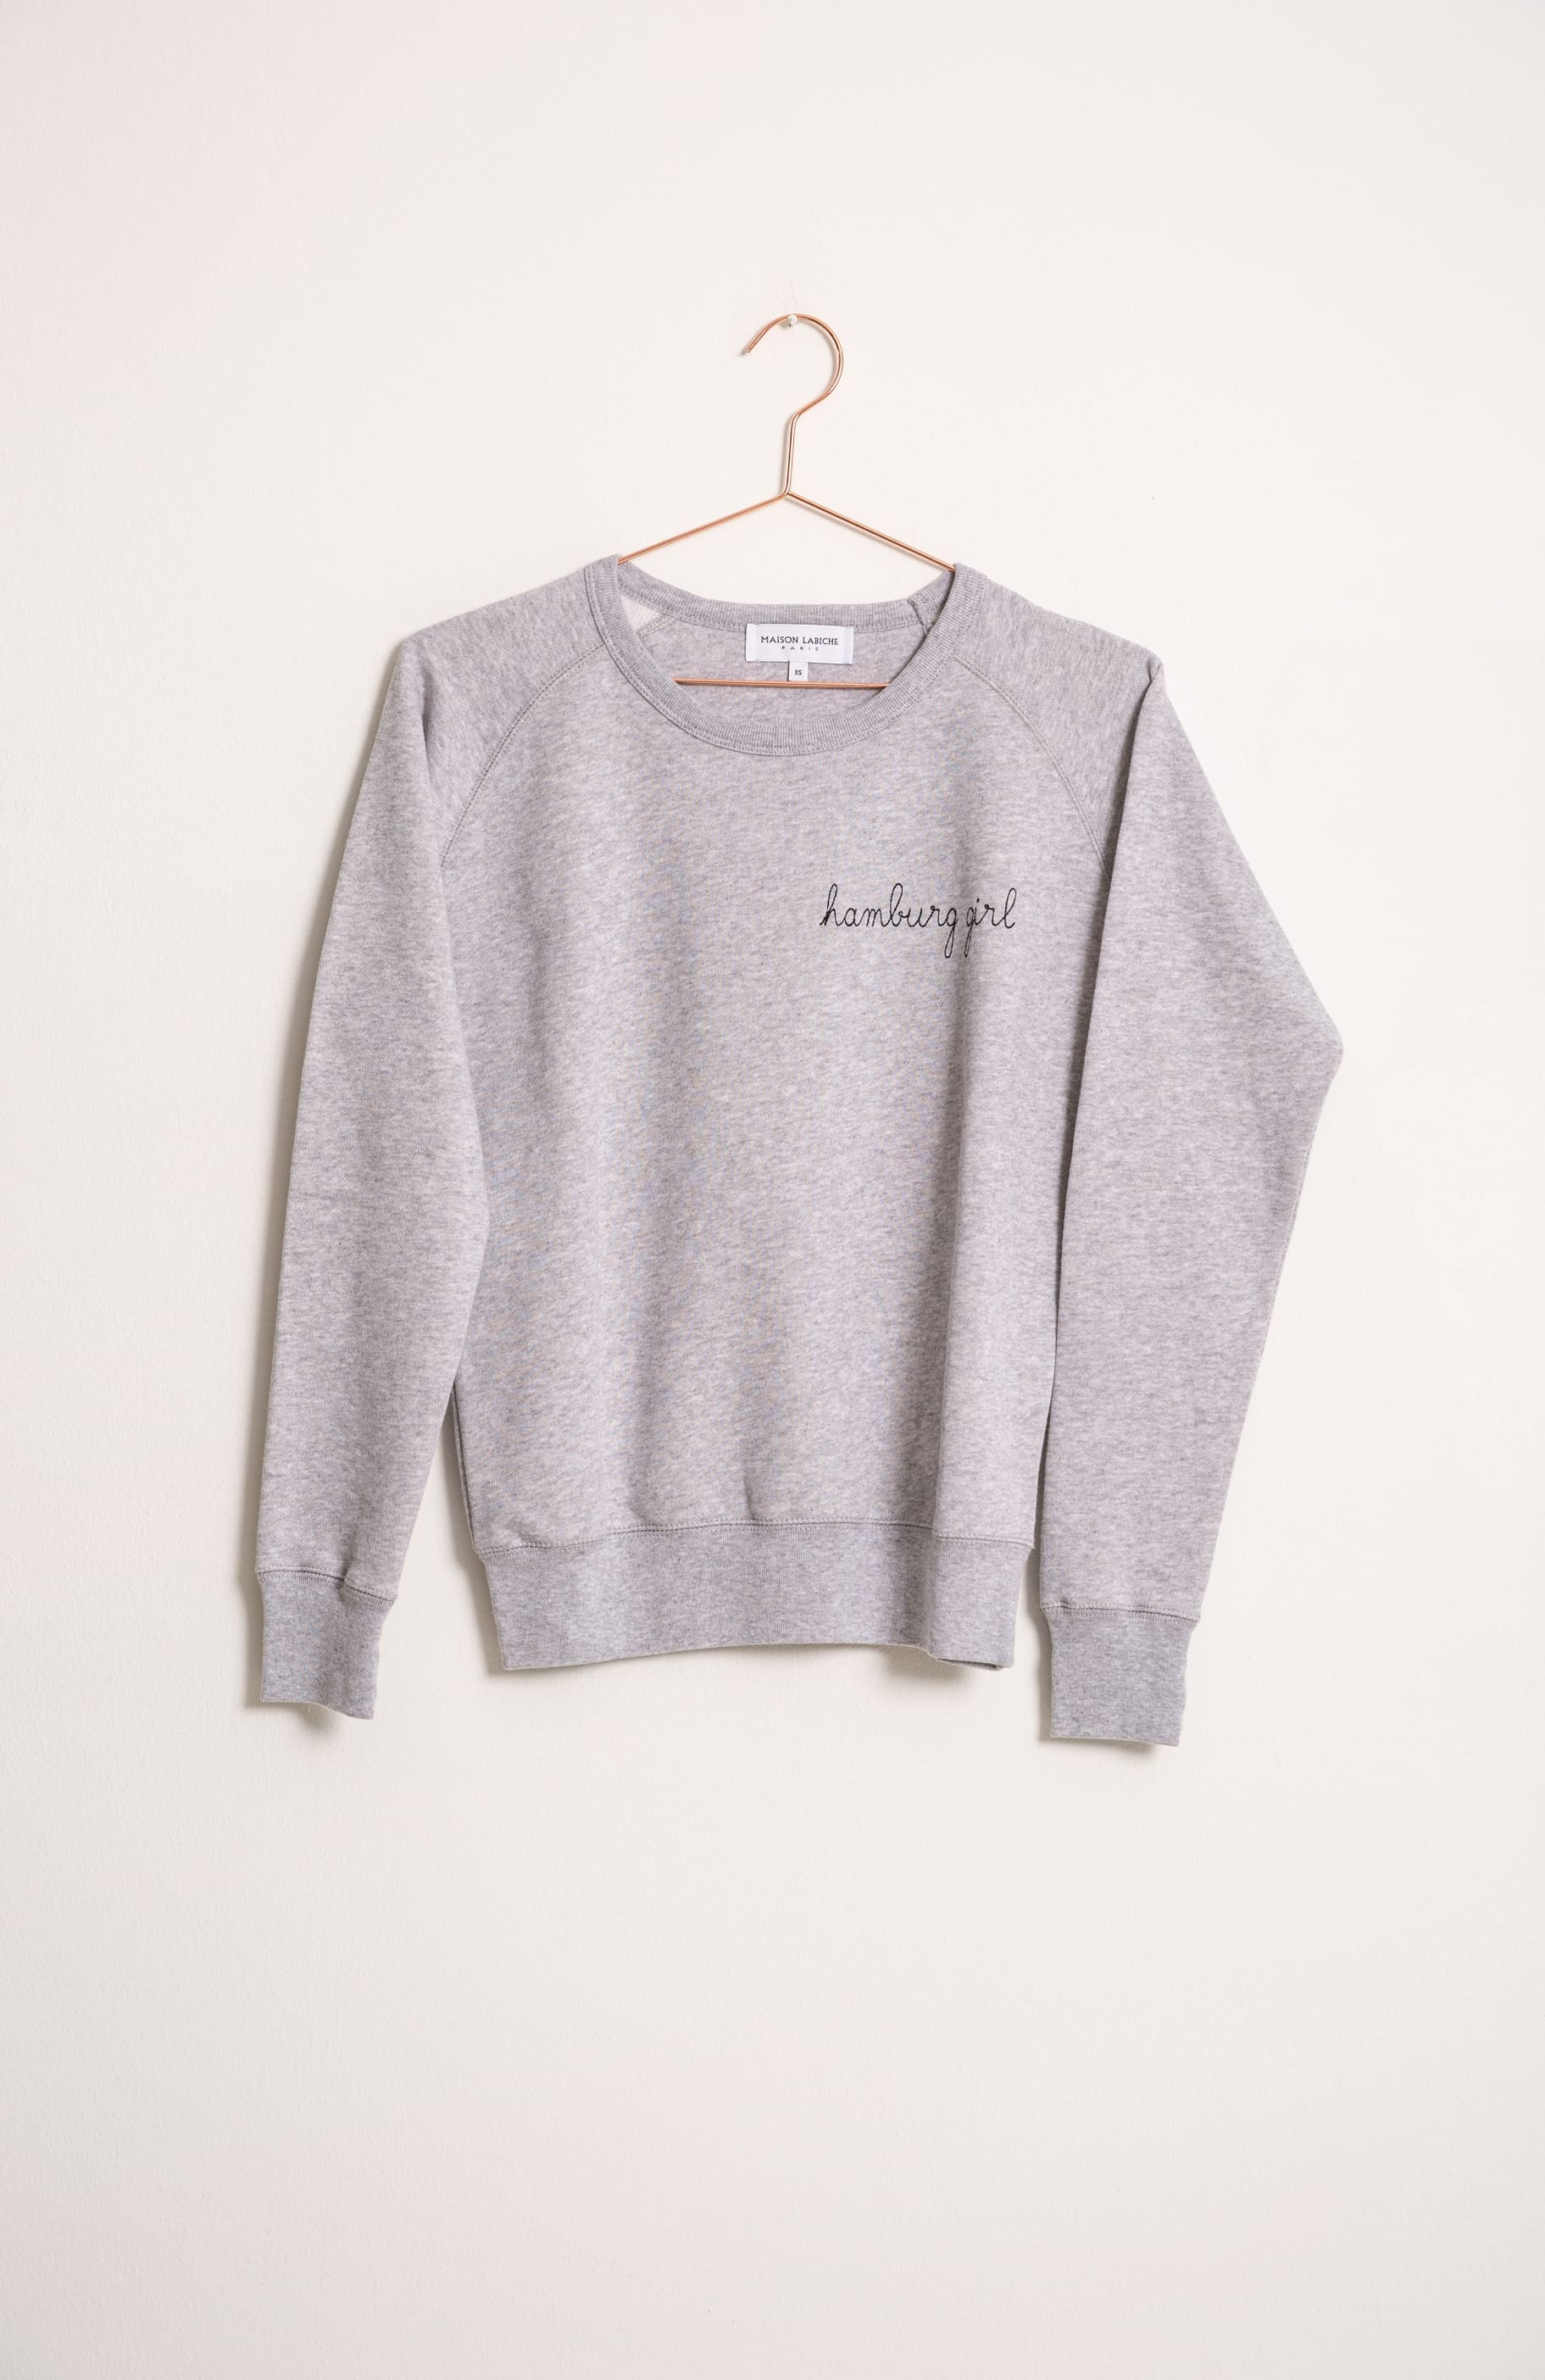 Hamburg Girl Sweater